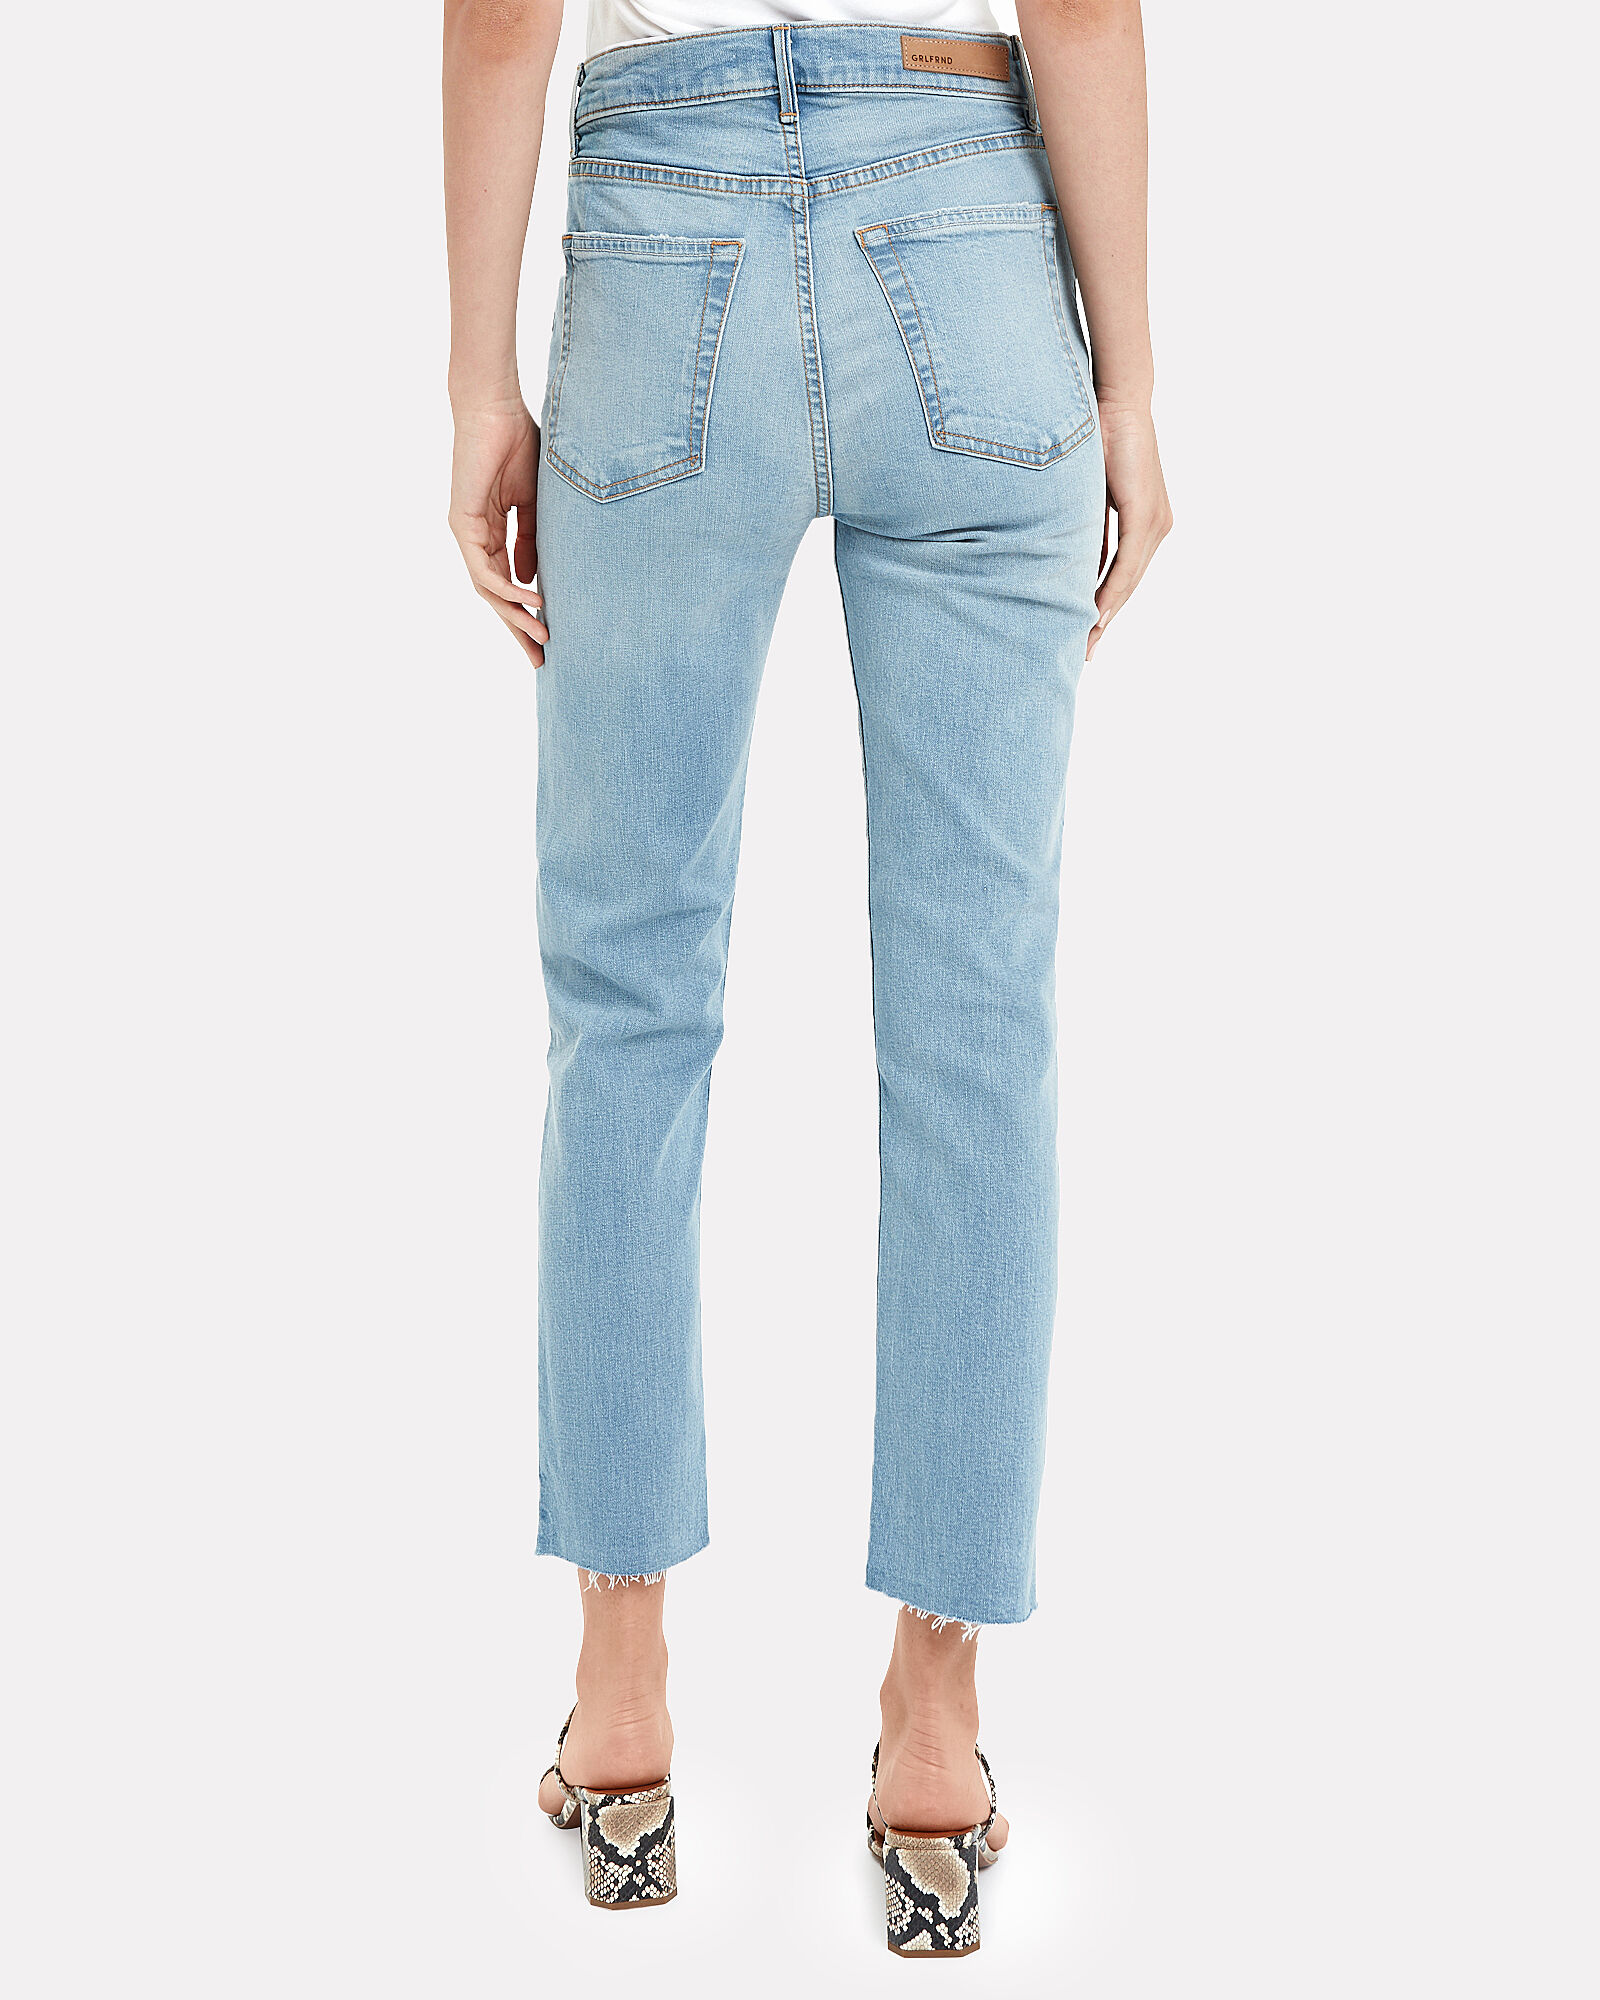 Reed Boot Cropped Jeans, MID-BLUE DENIM, hi-res